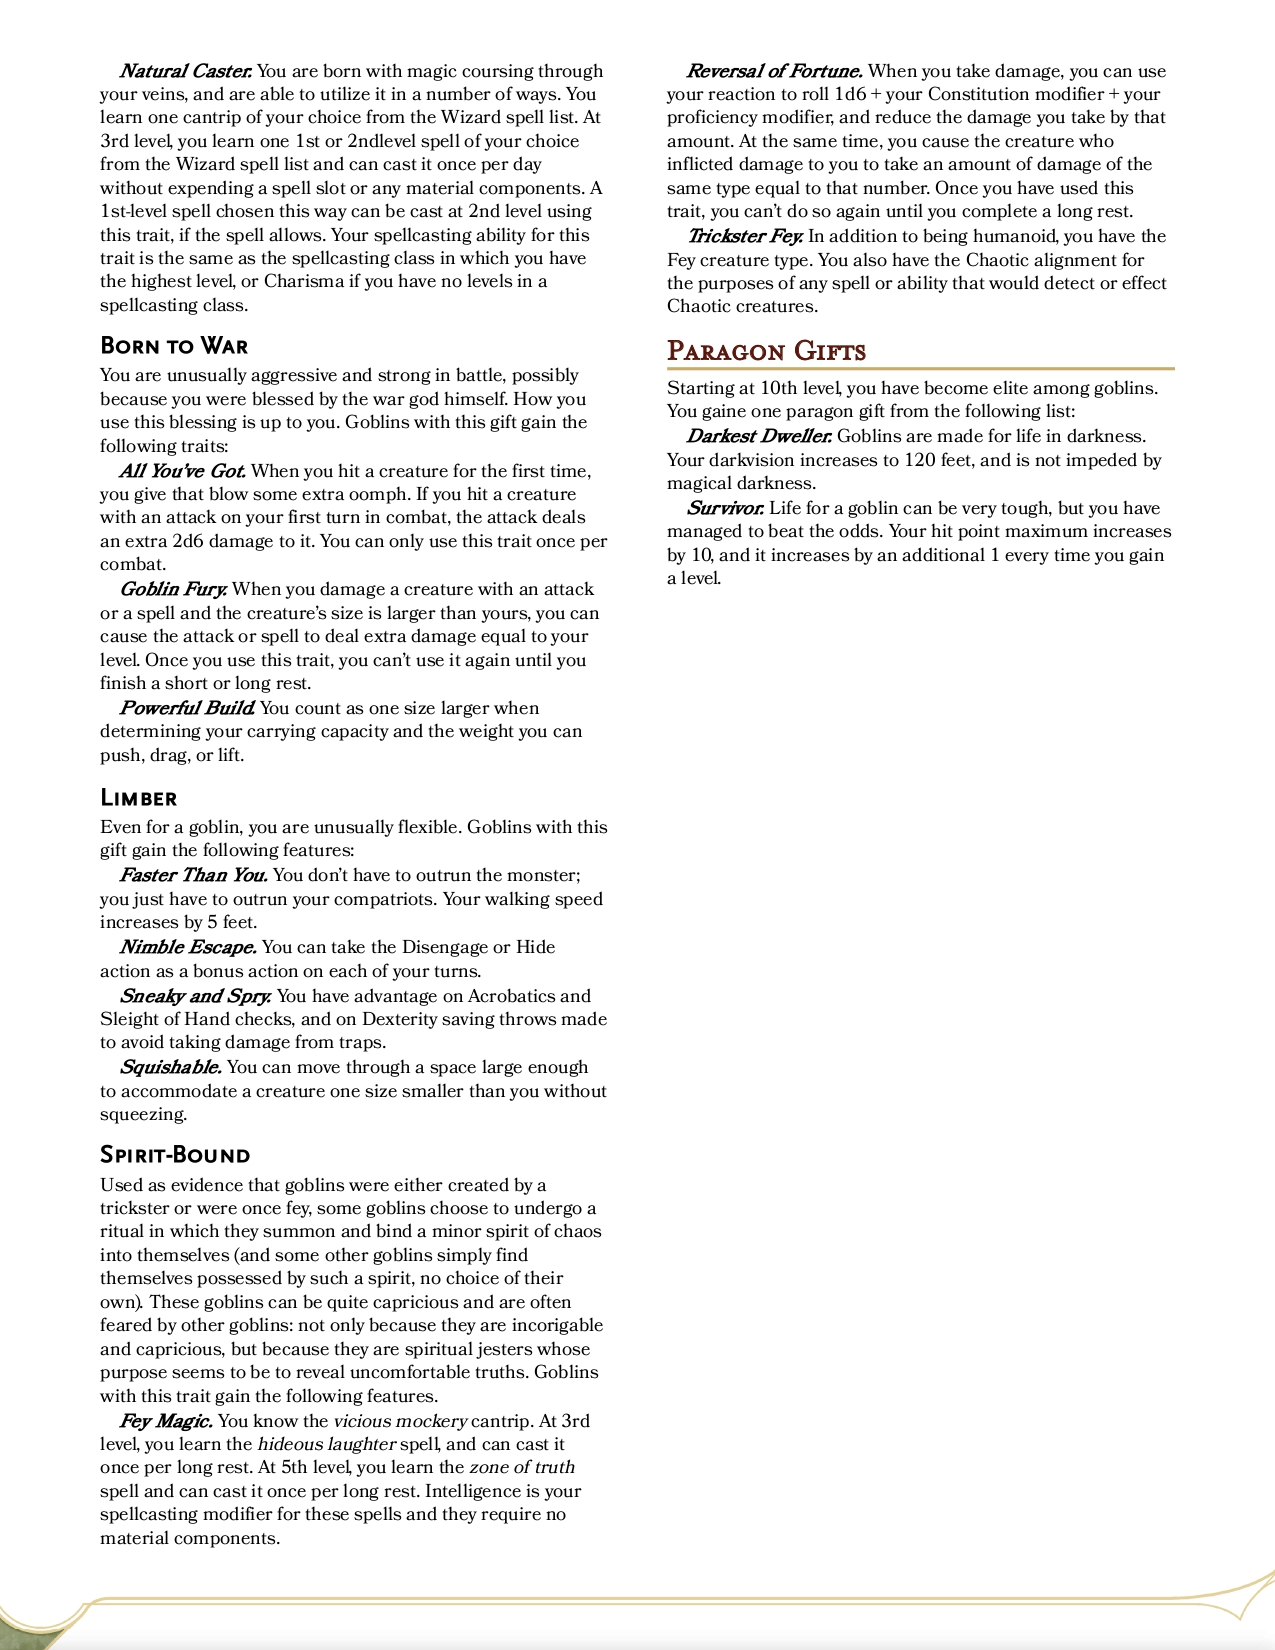 My Heritages and Cultures_page-0006.jpg